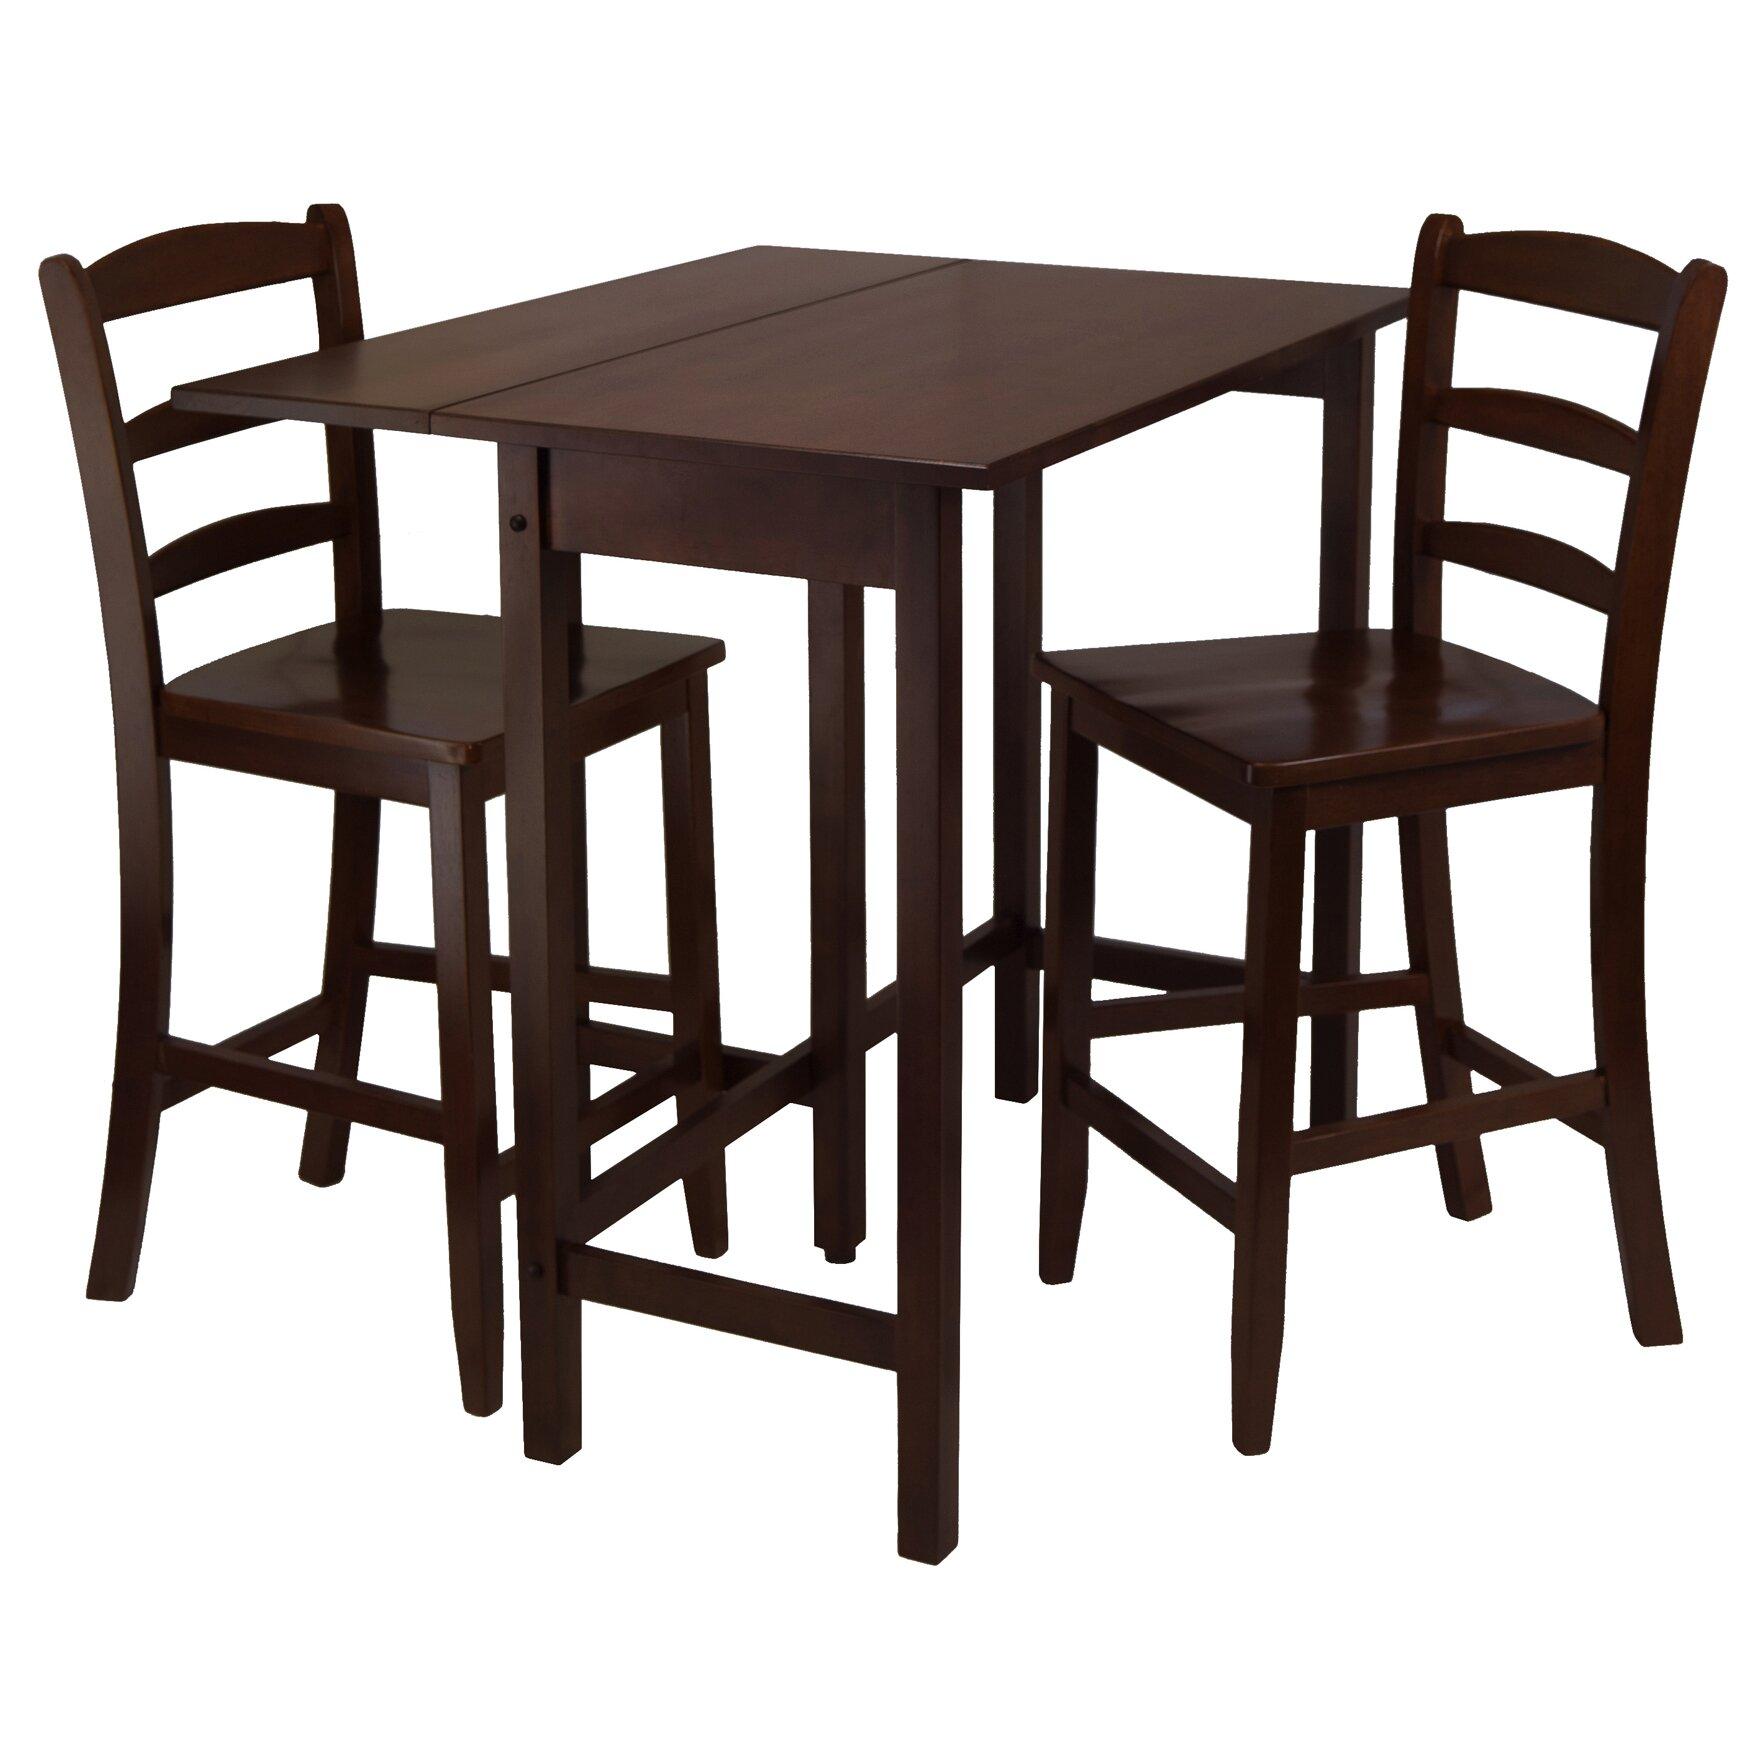 HD wallpapers groveland dining table with chairs set of 2